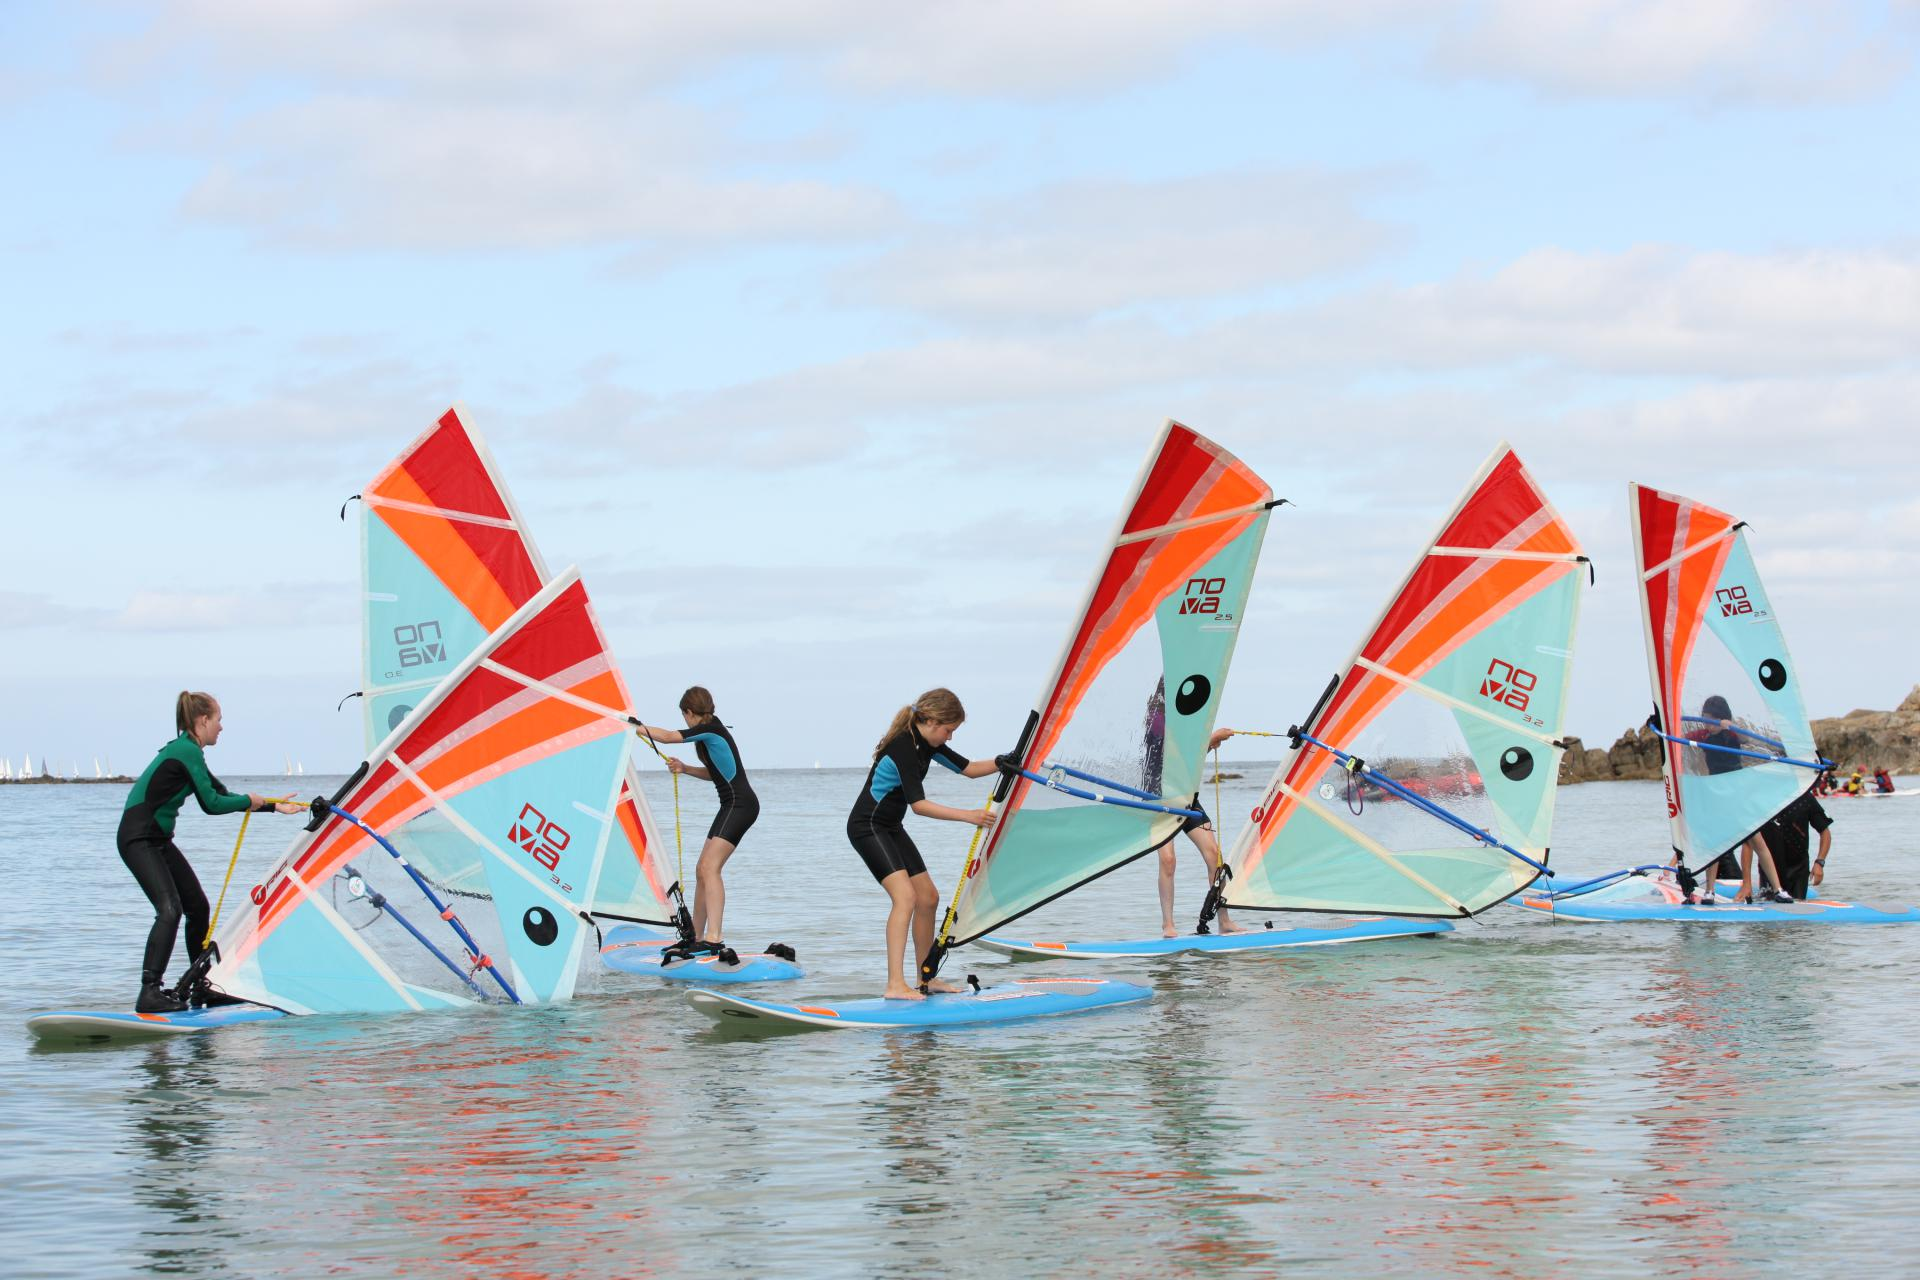 Group windsurfing at the Club Nautique du Rohu - Morbihan - Brittany